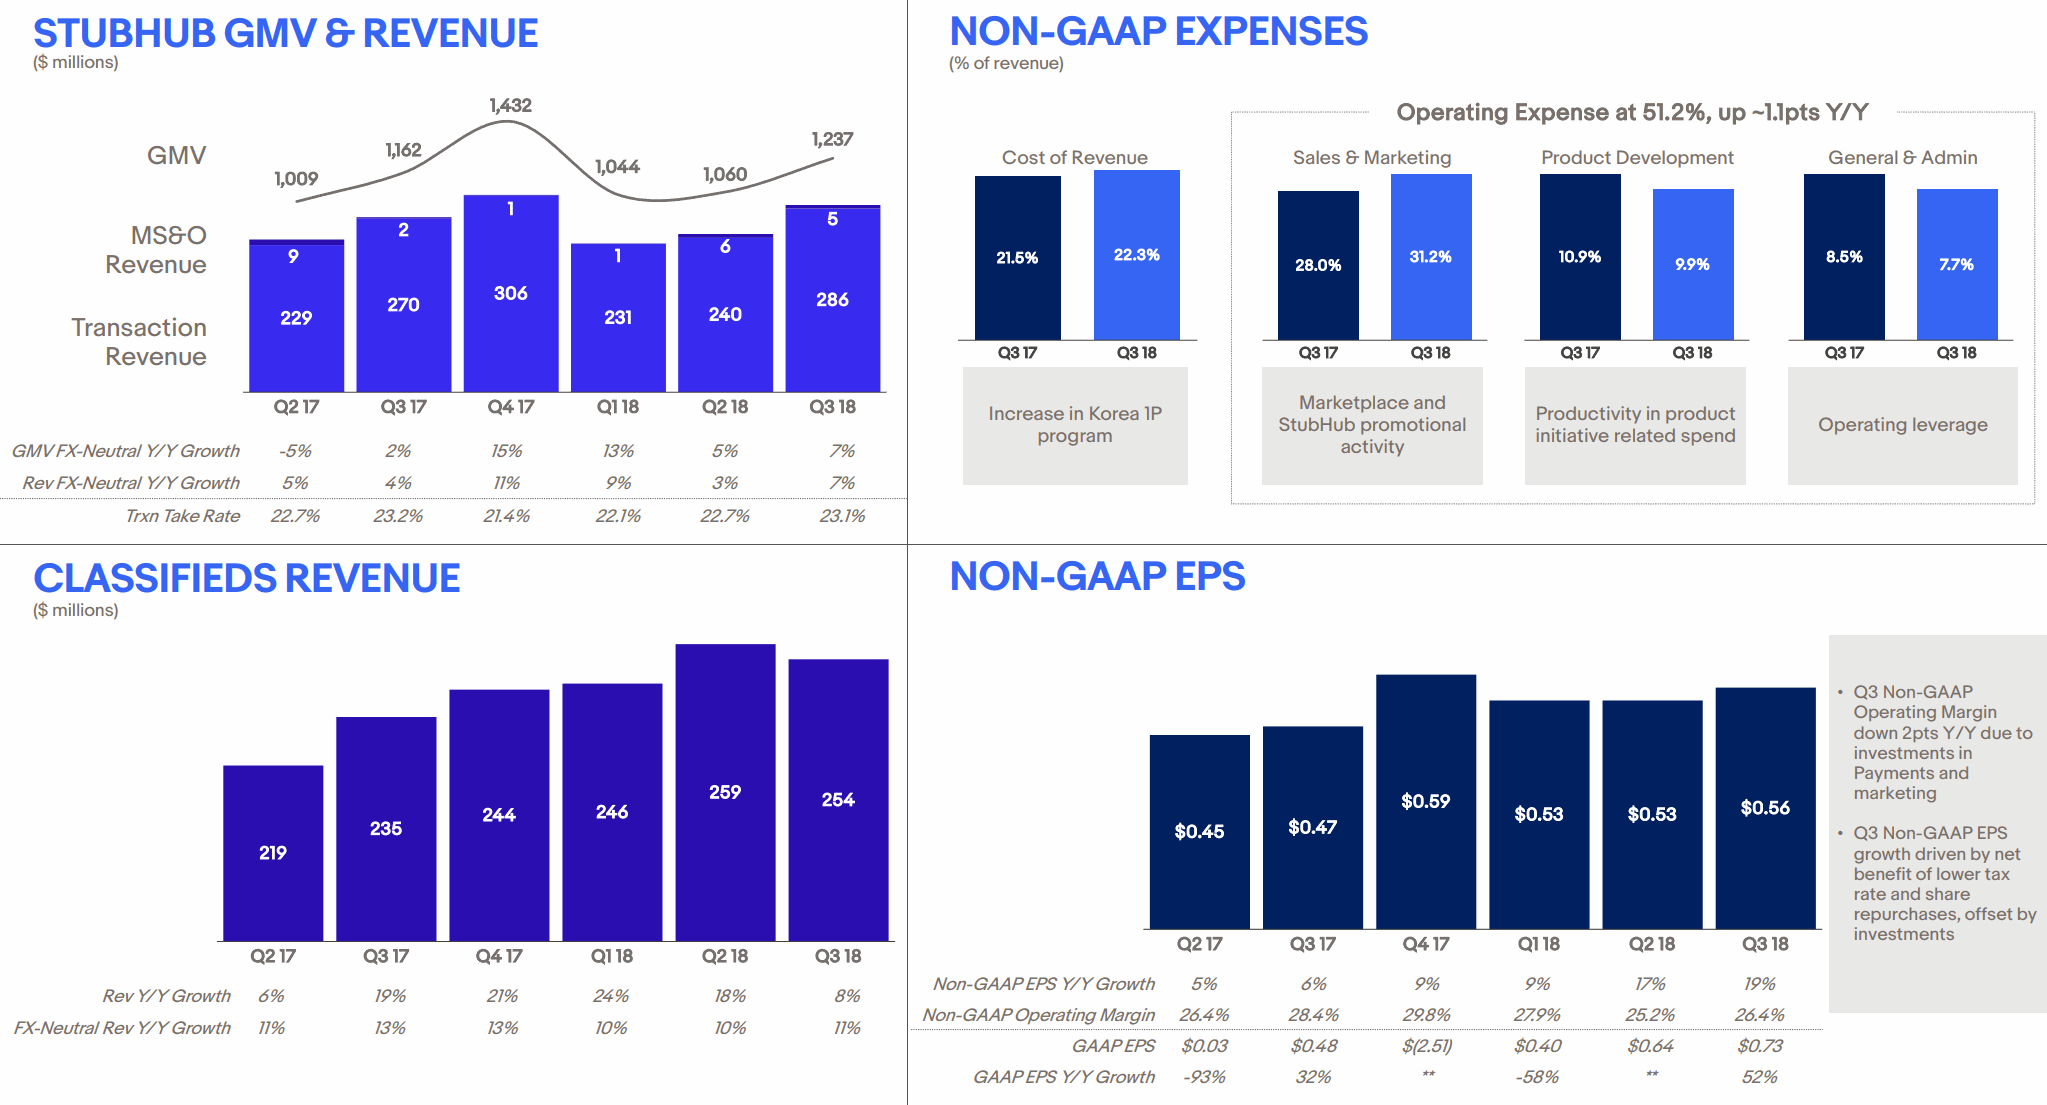 Stubhub-2018Q3-GMV-and-Revenue